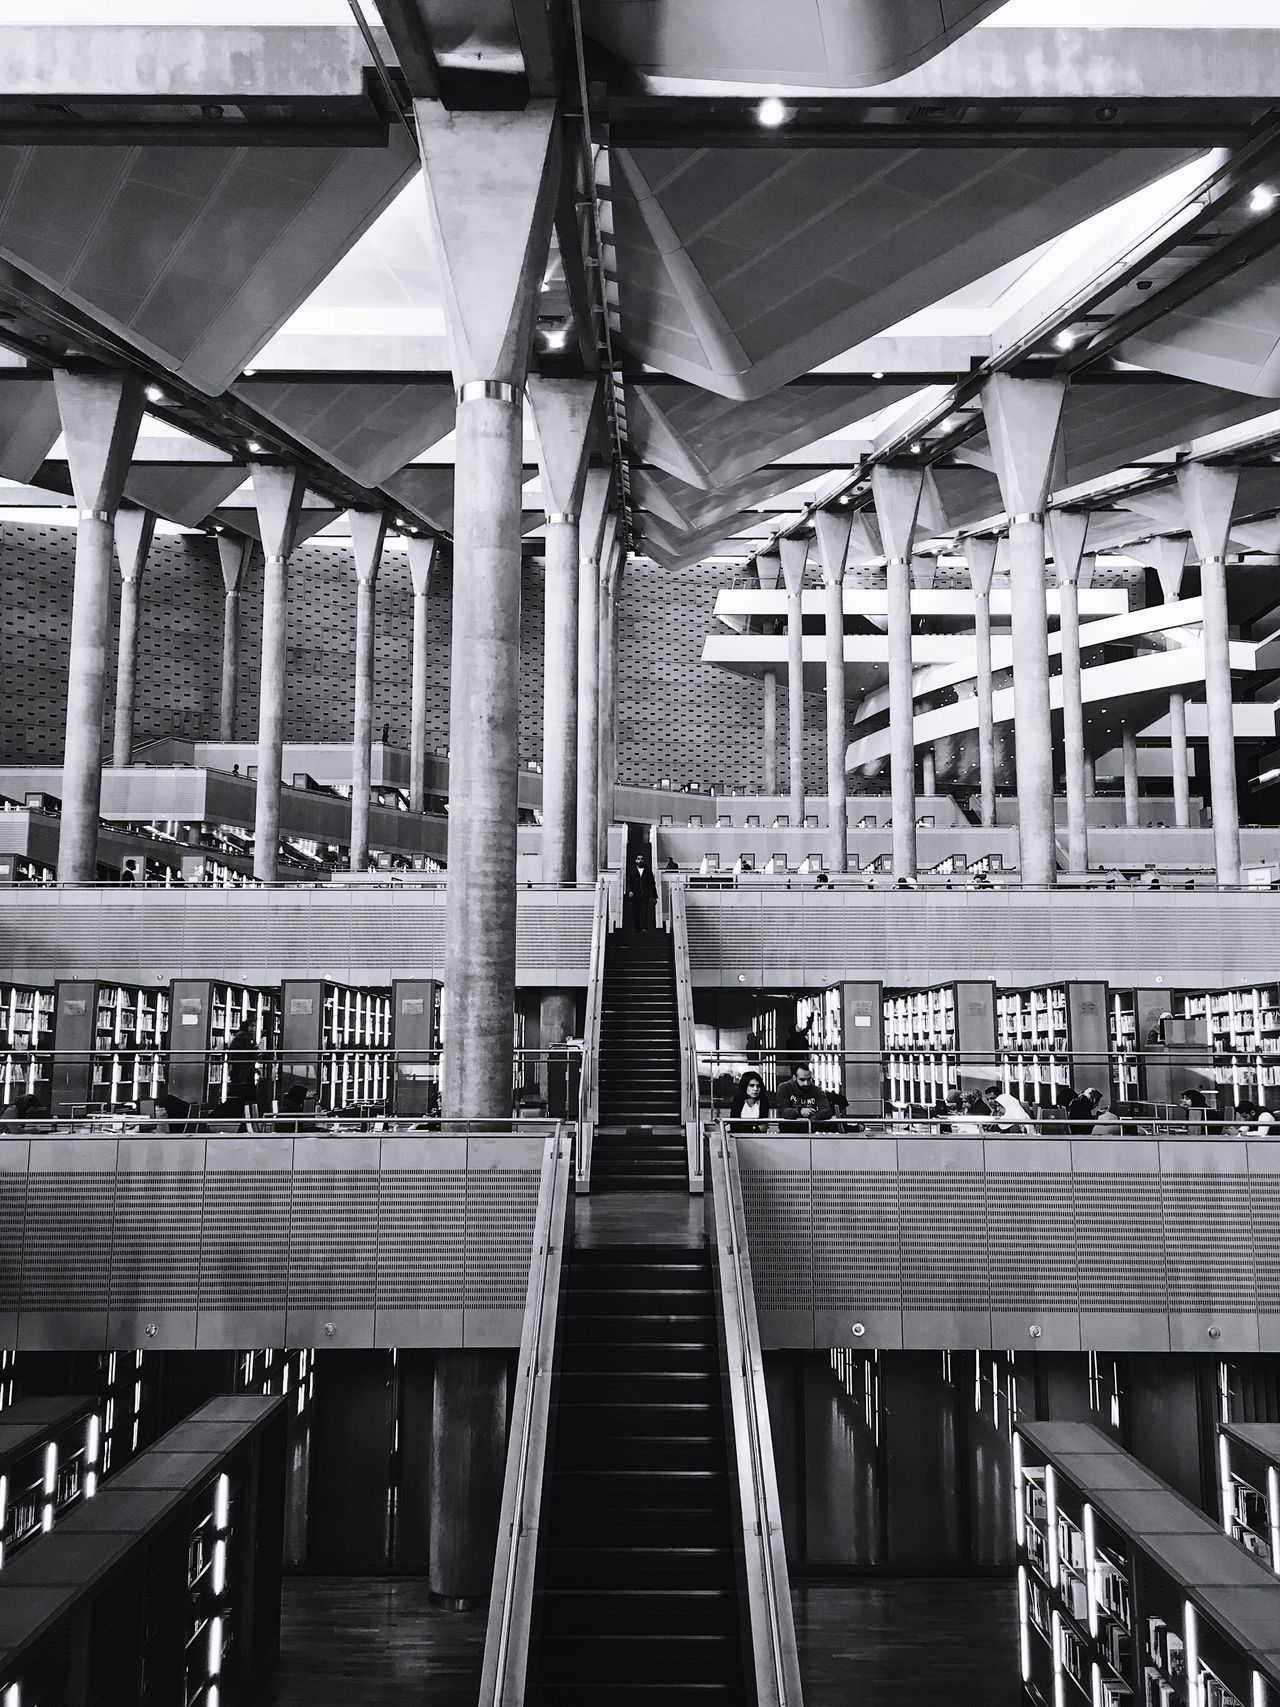 Library Egypt Alexandria Alexandria Egypt History Indoors  Built Structure Architecture Day No People Architecture Biblioteca Books Bc Ancient Ancient History Alexander The Great Stairs Stairs_collection Library Book Library Building Blackandwhite Black And White Symmetry